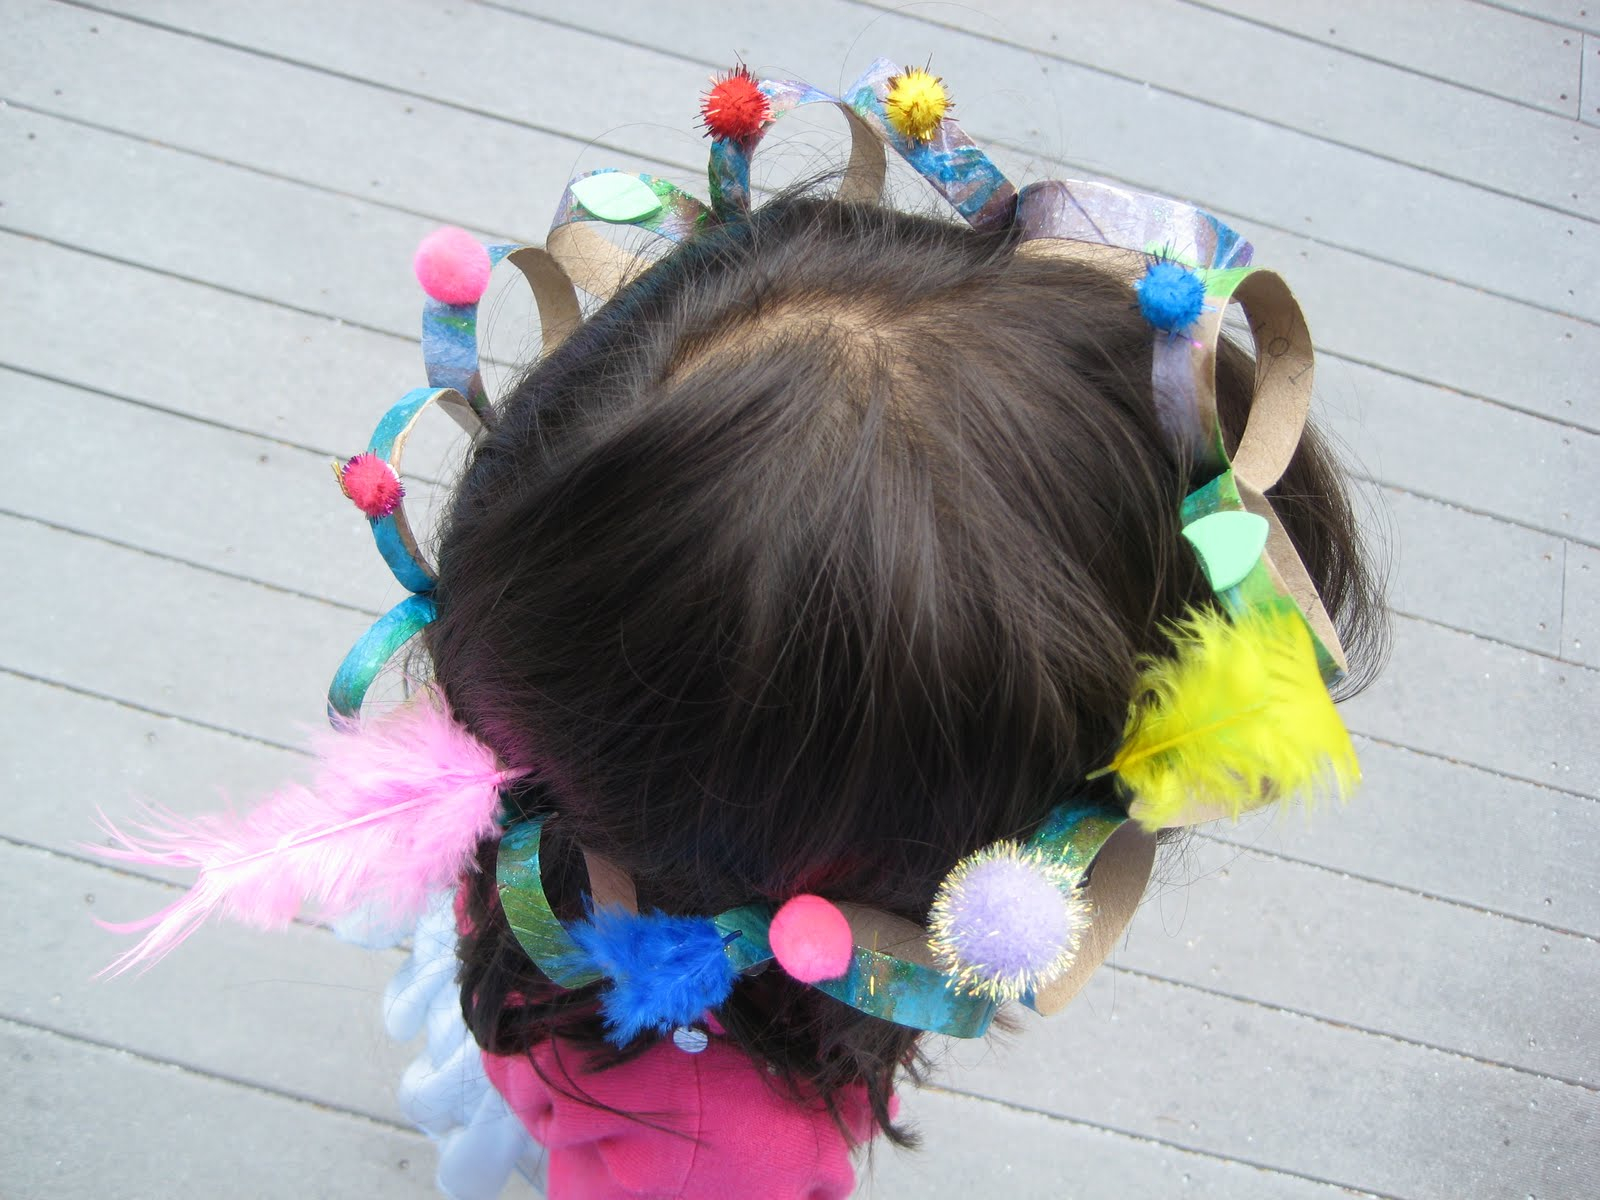 Recycled Paper Towel Tubes Crafts for Kids 4 Crazy Kings Paper Towel Tube Craft Crowns